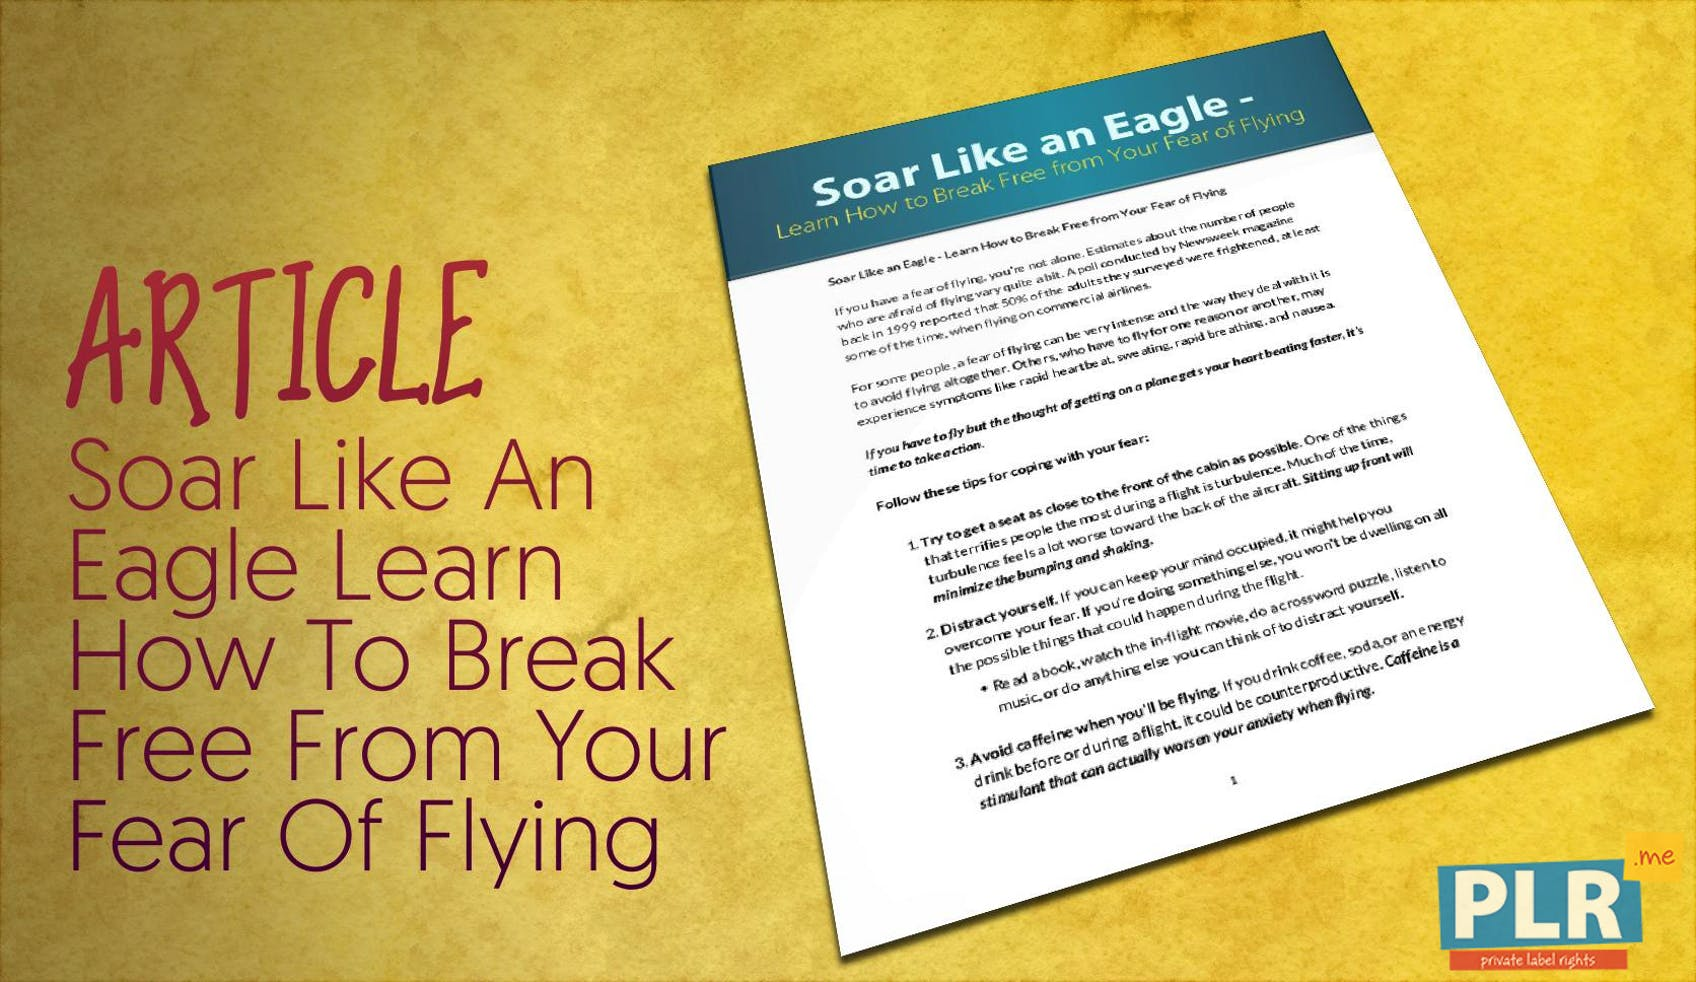 Soar Like An Eagle Learn How To Break Free From Your Fear Of Flying